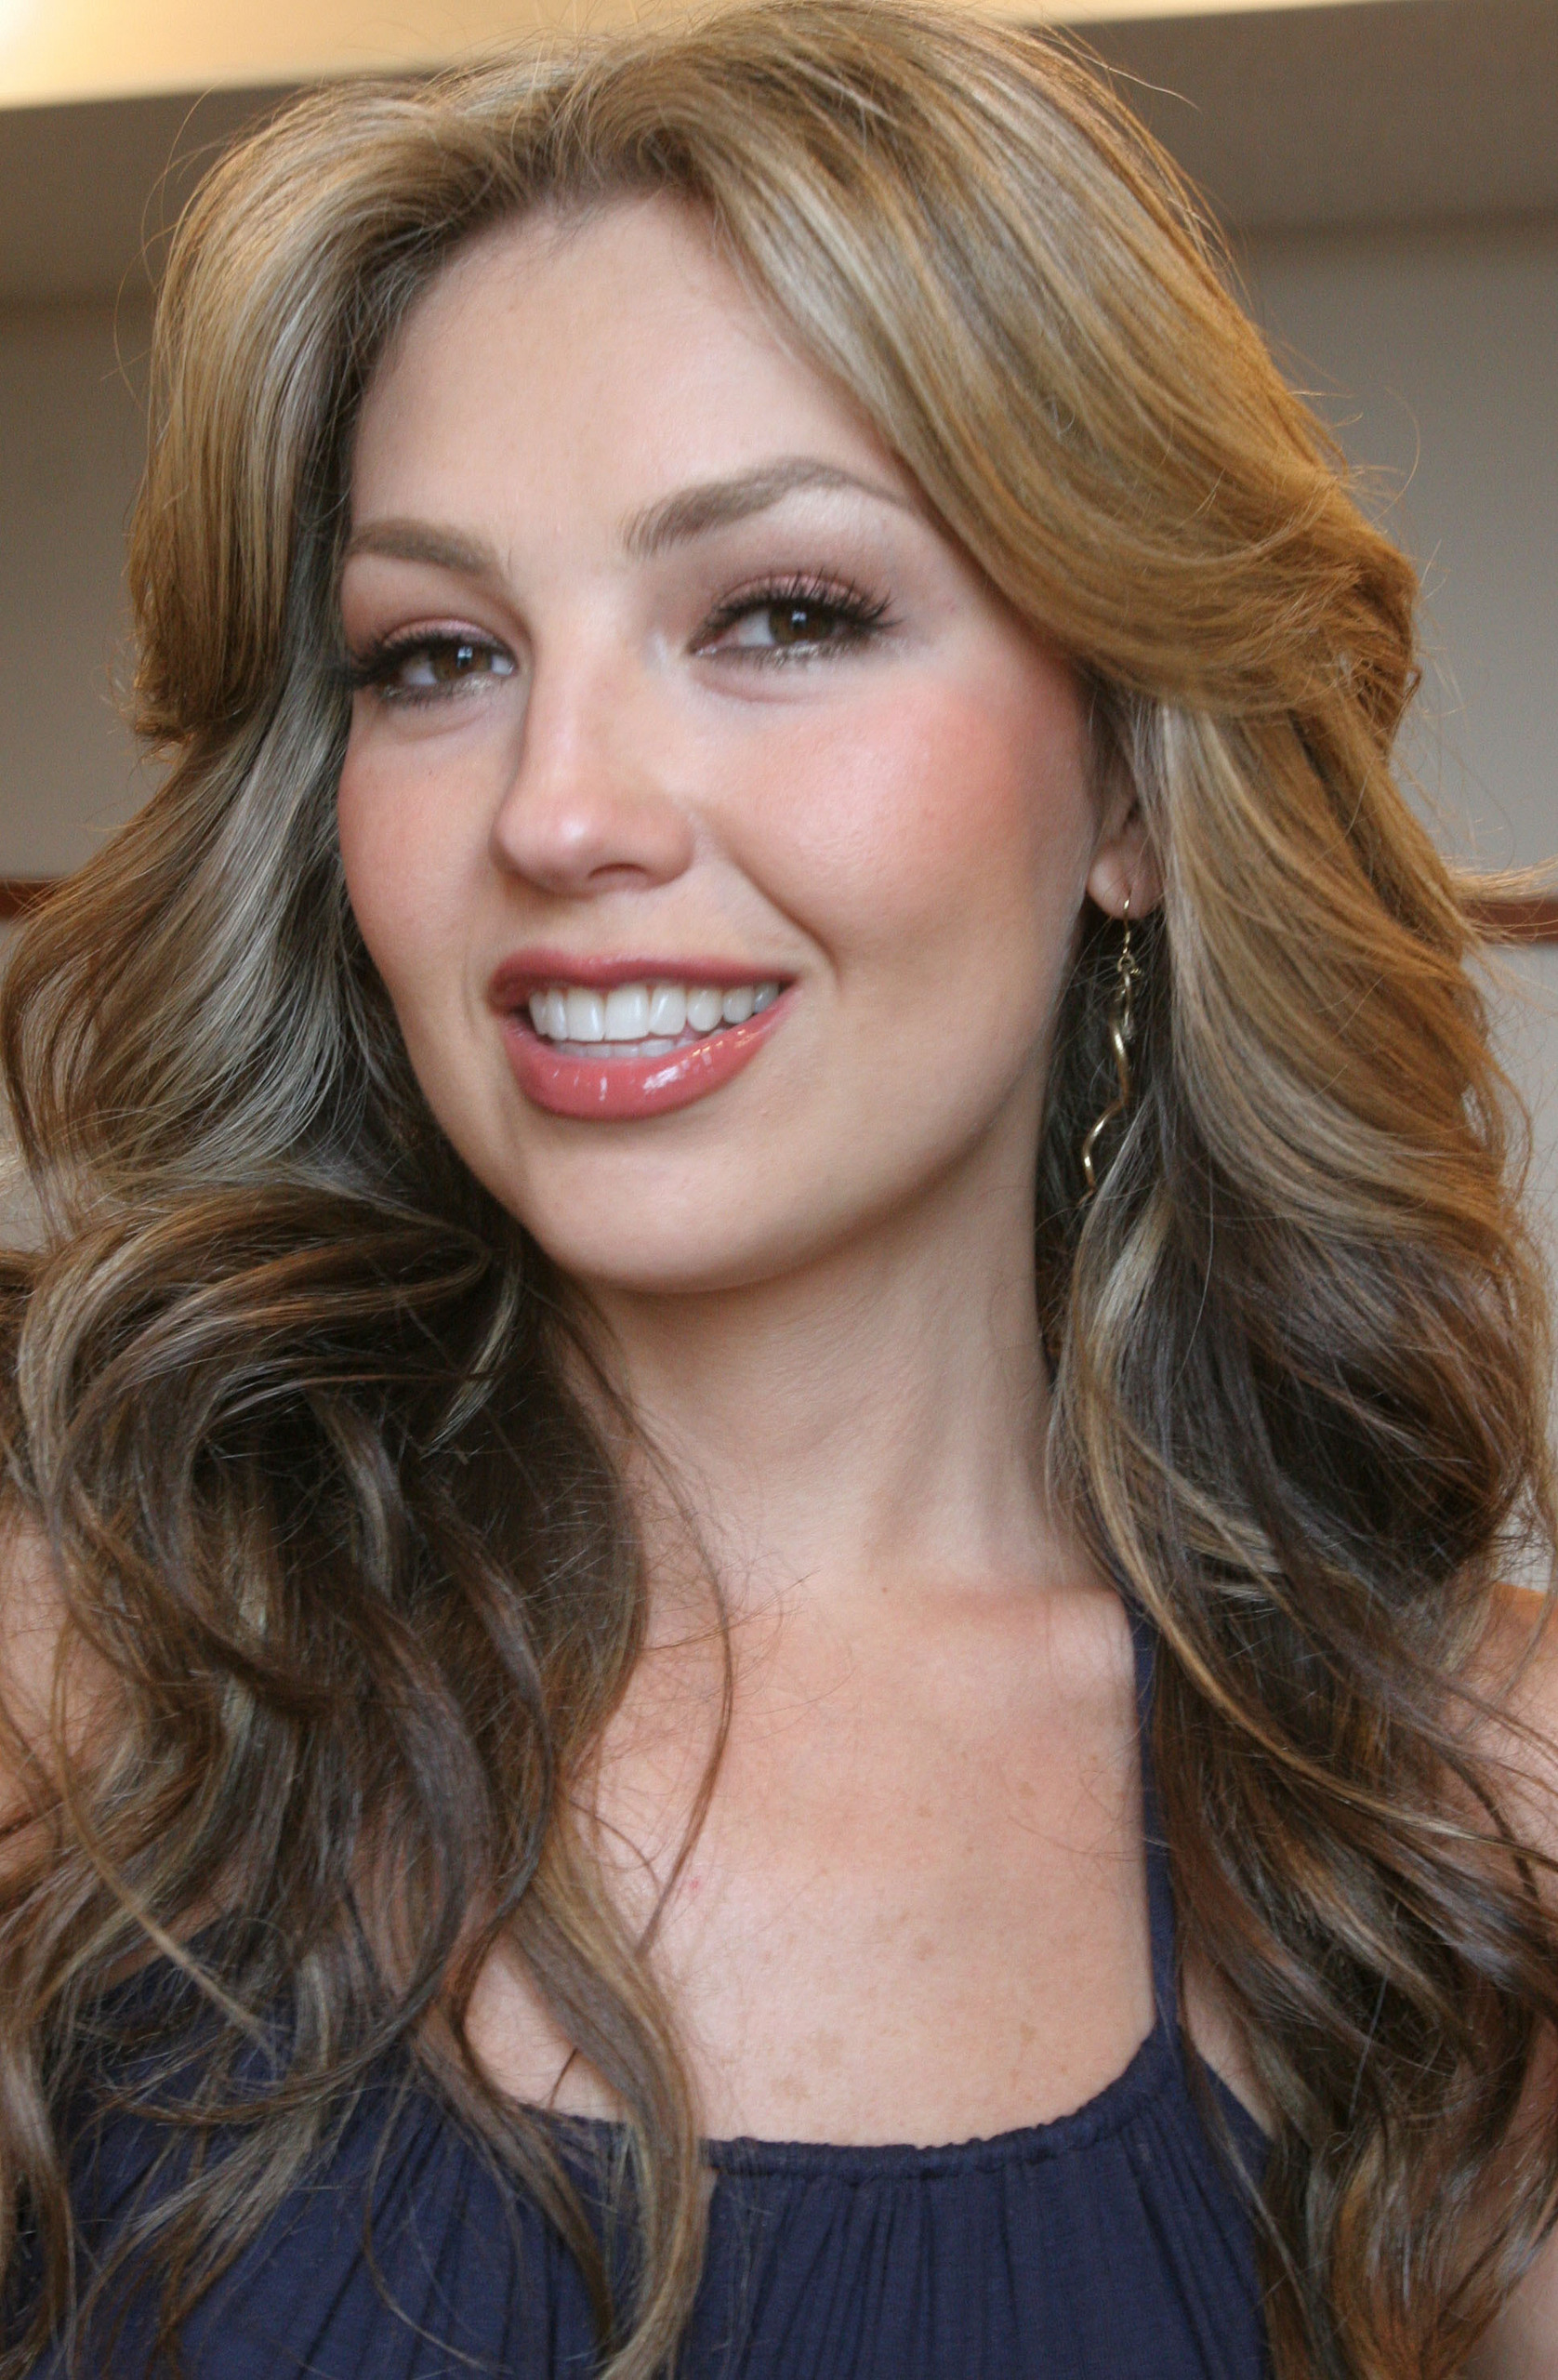 https://i0.wp.com/images2.fanpop.com/images/photos/6700000/Thalia-thalia-6708665-1676-2560.jpg